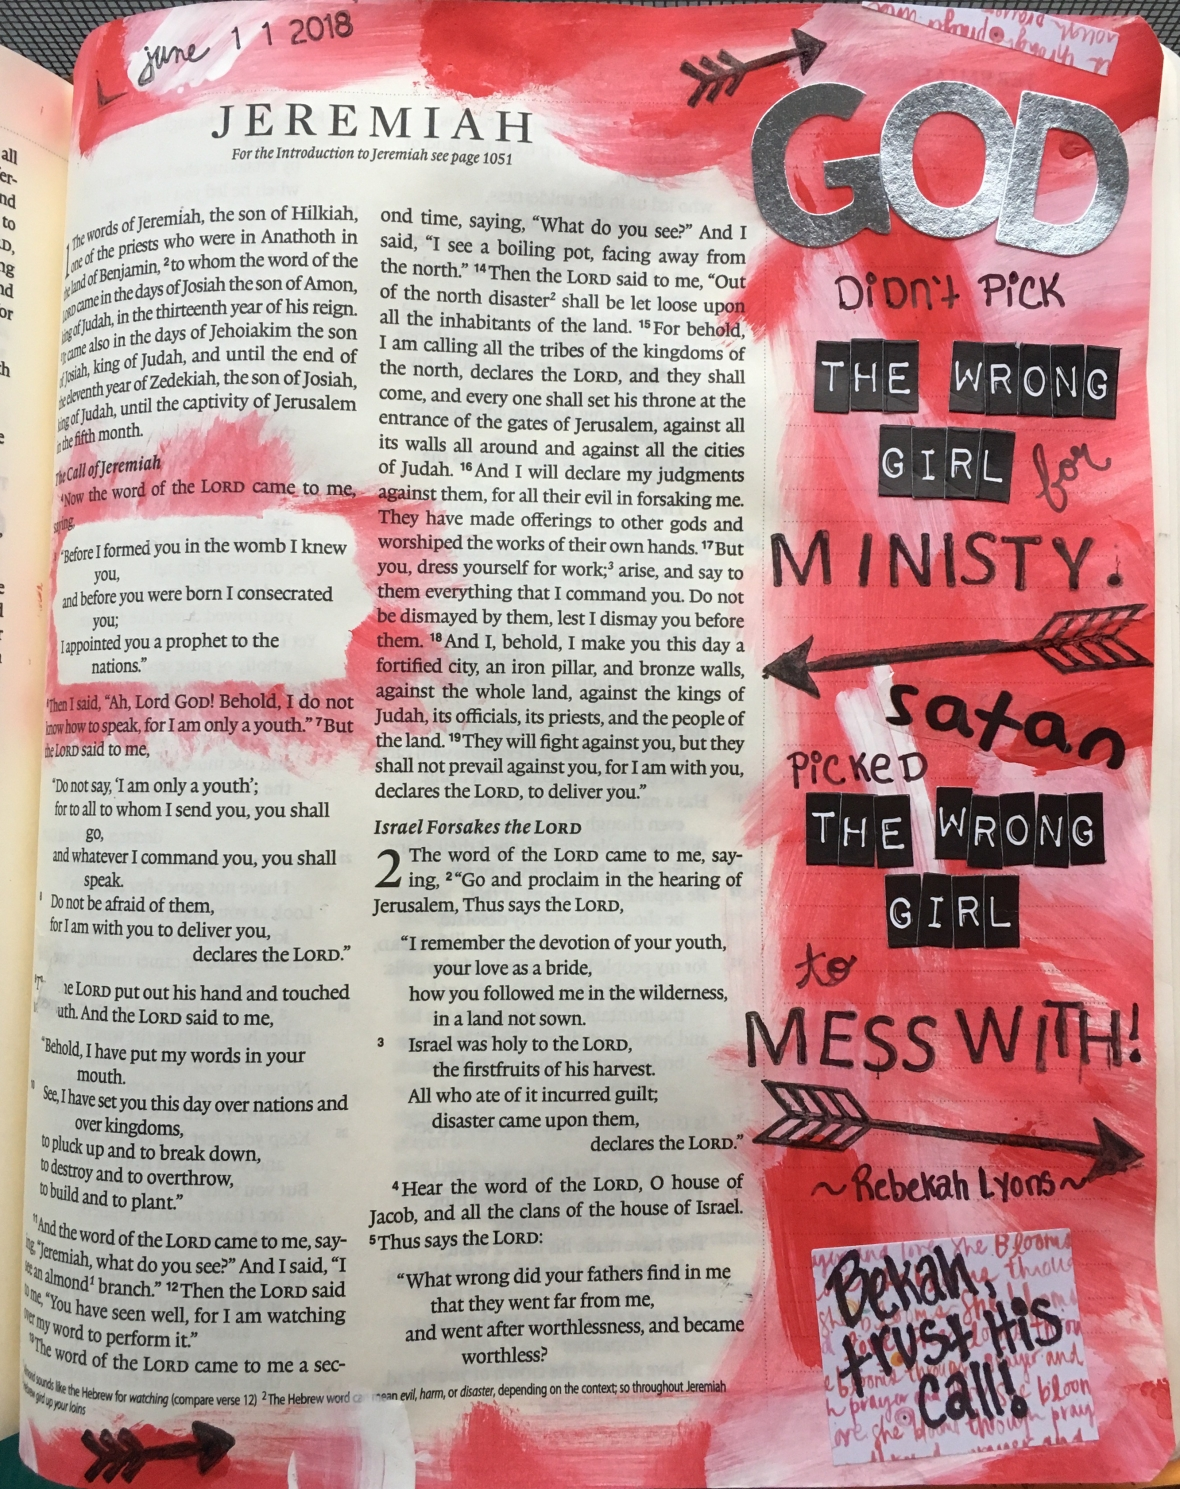 """God didn't pick the wrong girl for ministry. Satan picked the wrong girl to mess with!"" ~ Rebekah Lyons Jeremiah 1"